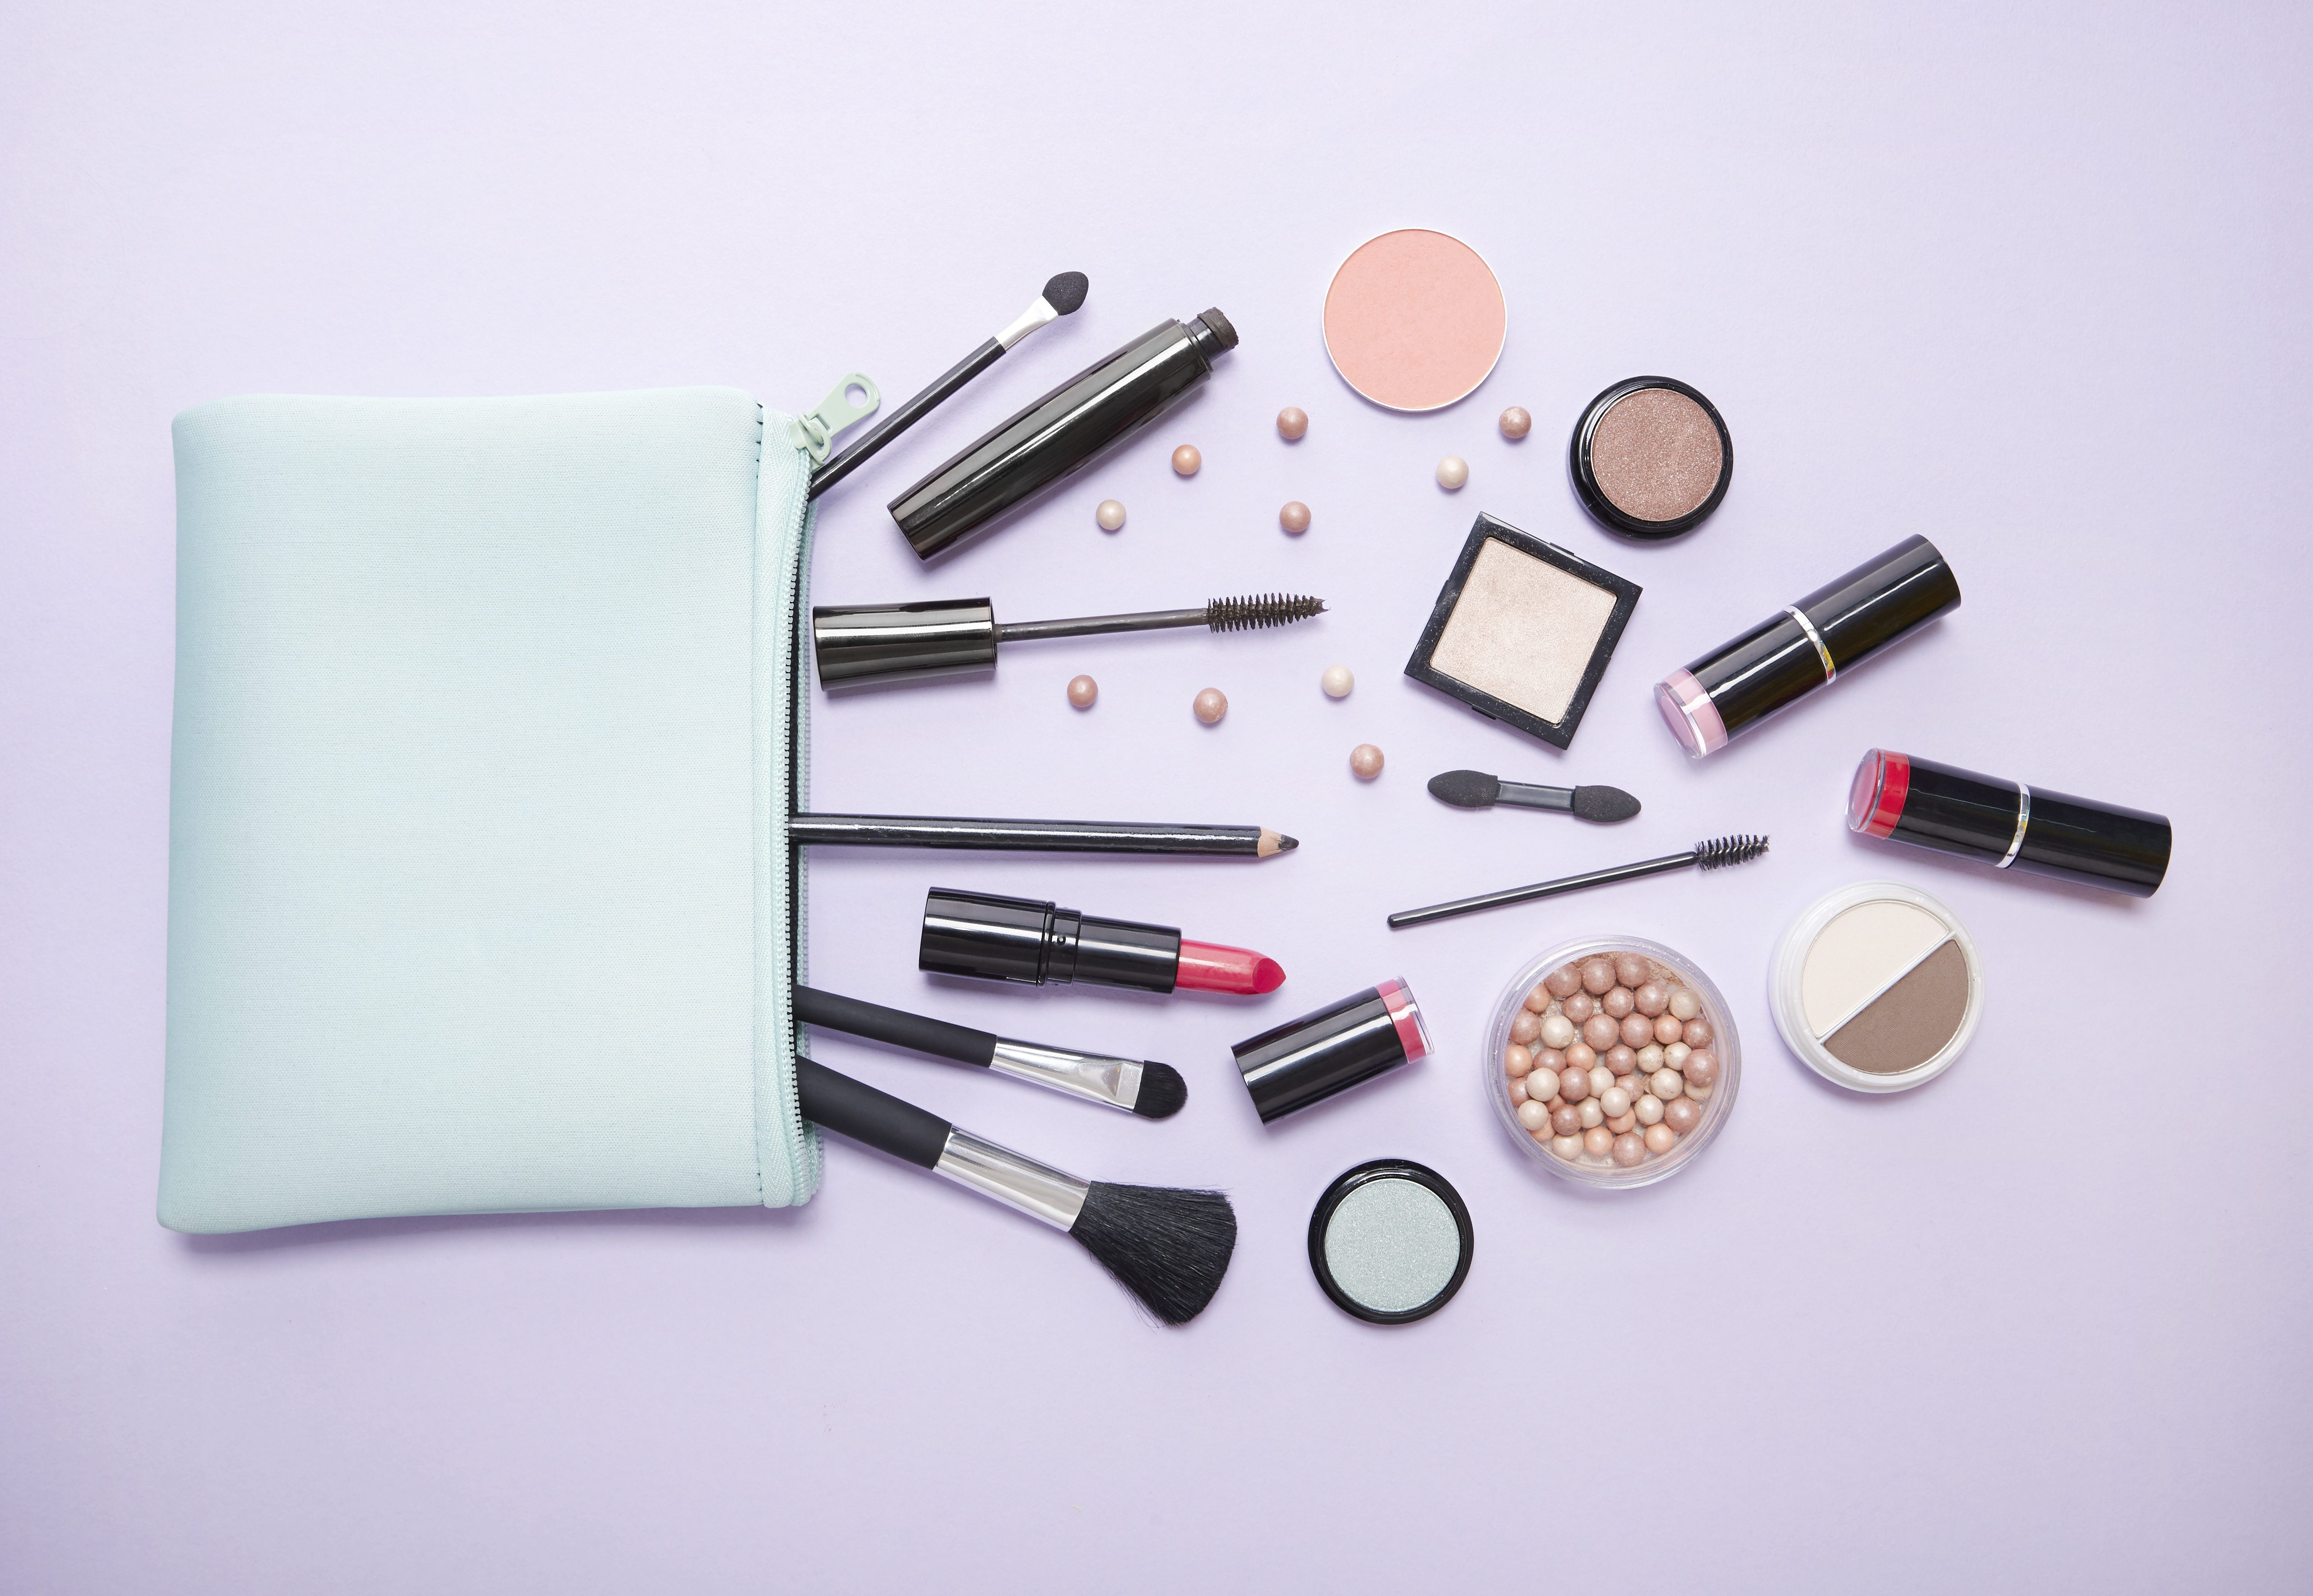 Aerial view of a blue make up bag, with cosmetic beauty products spilling out on to a pastel purple background